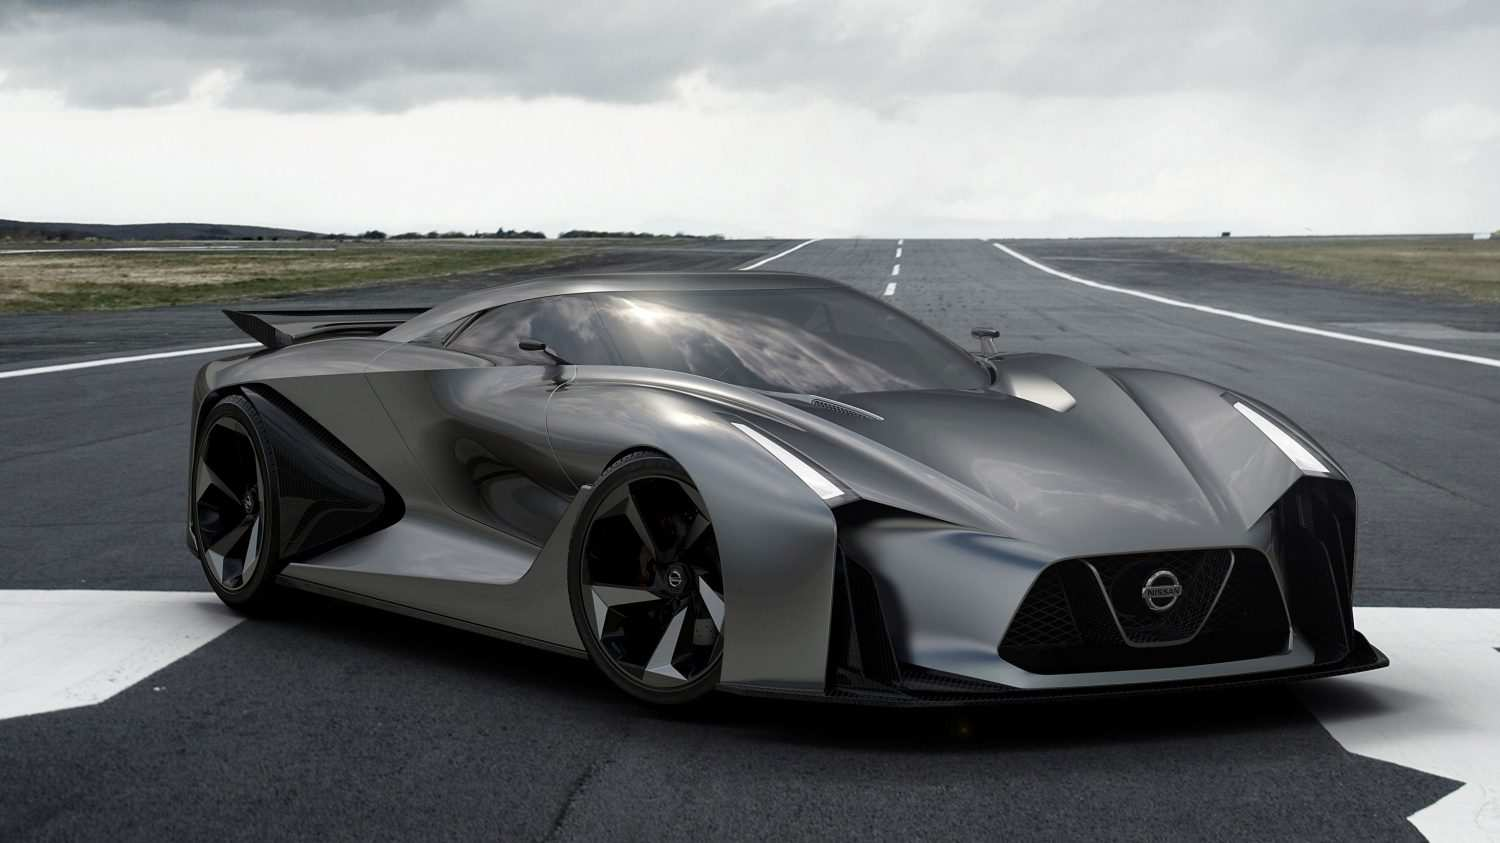 49 Gallery of Nissan Concept 2020 Gran Turismo History by Nissan Concept 2020 Gran Turismo